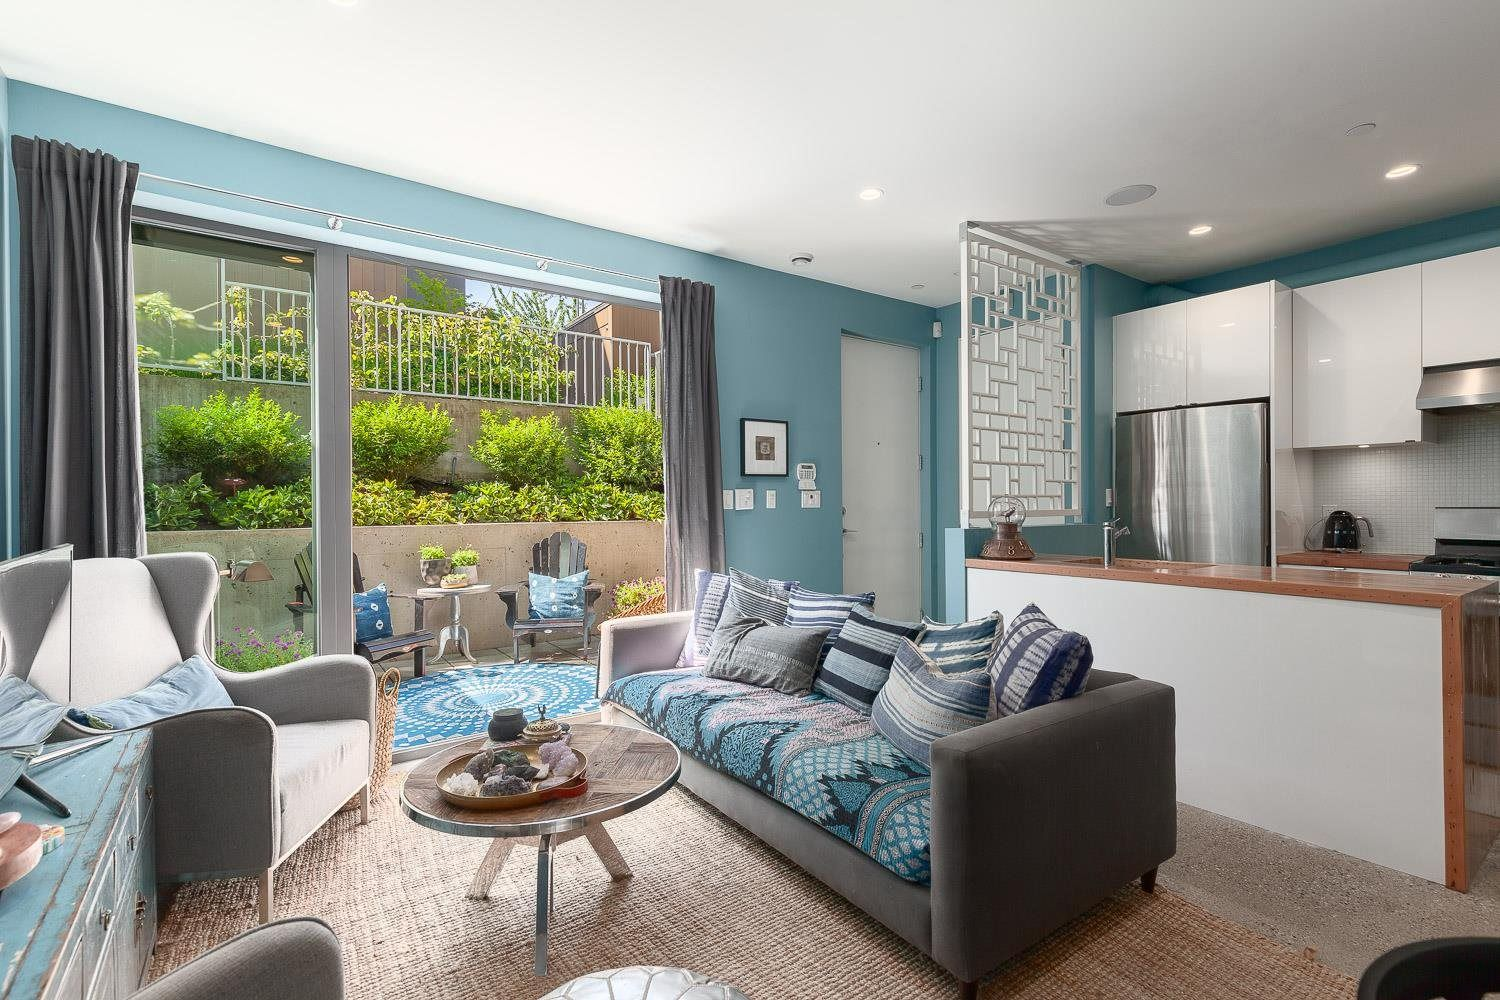 """Main Photo: 3 662 UNION Street in Vancouver: Strathcona Townhouse for sale in """"Union Eco Heritage"""" (Vancouver East)  : MLS®# R2602879"""